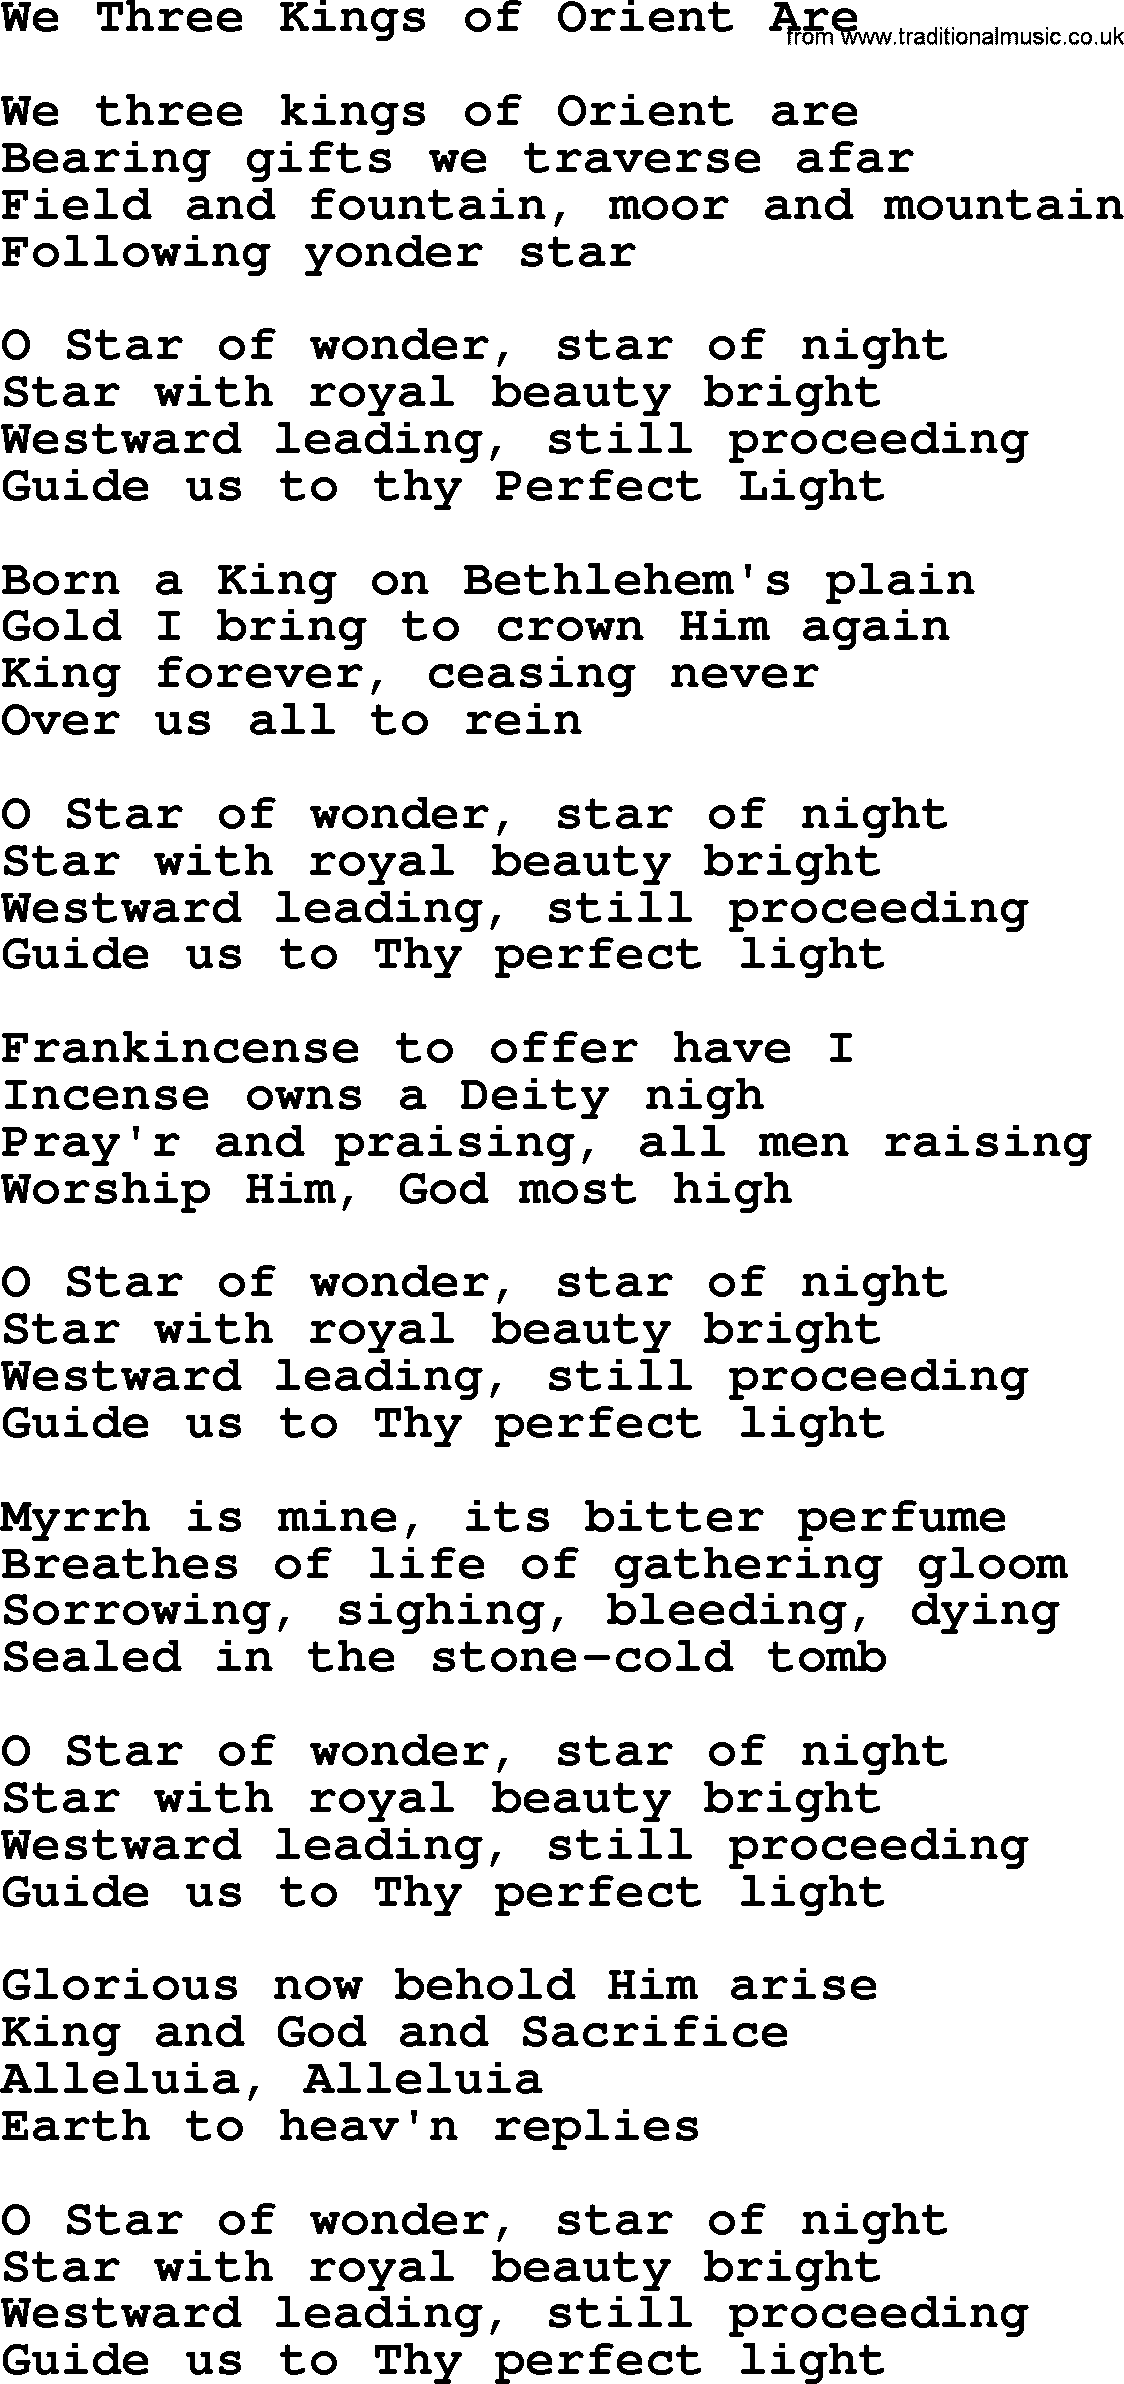 We three kings of orient are by the byrds lyrics with pdf the byrds song we three kings of orient are lyrics hexwebz Gallery